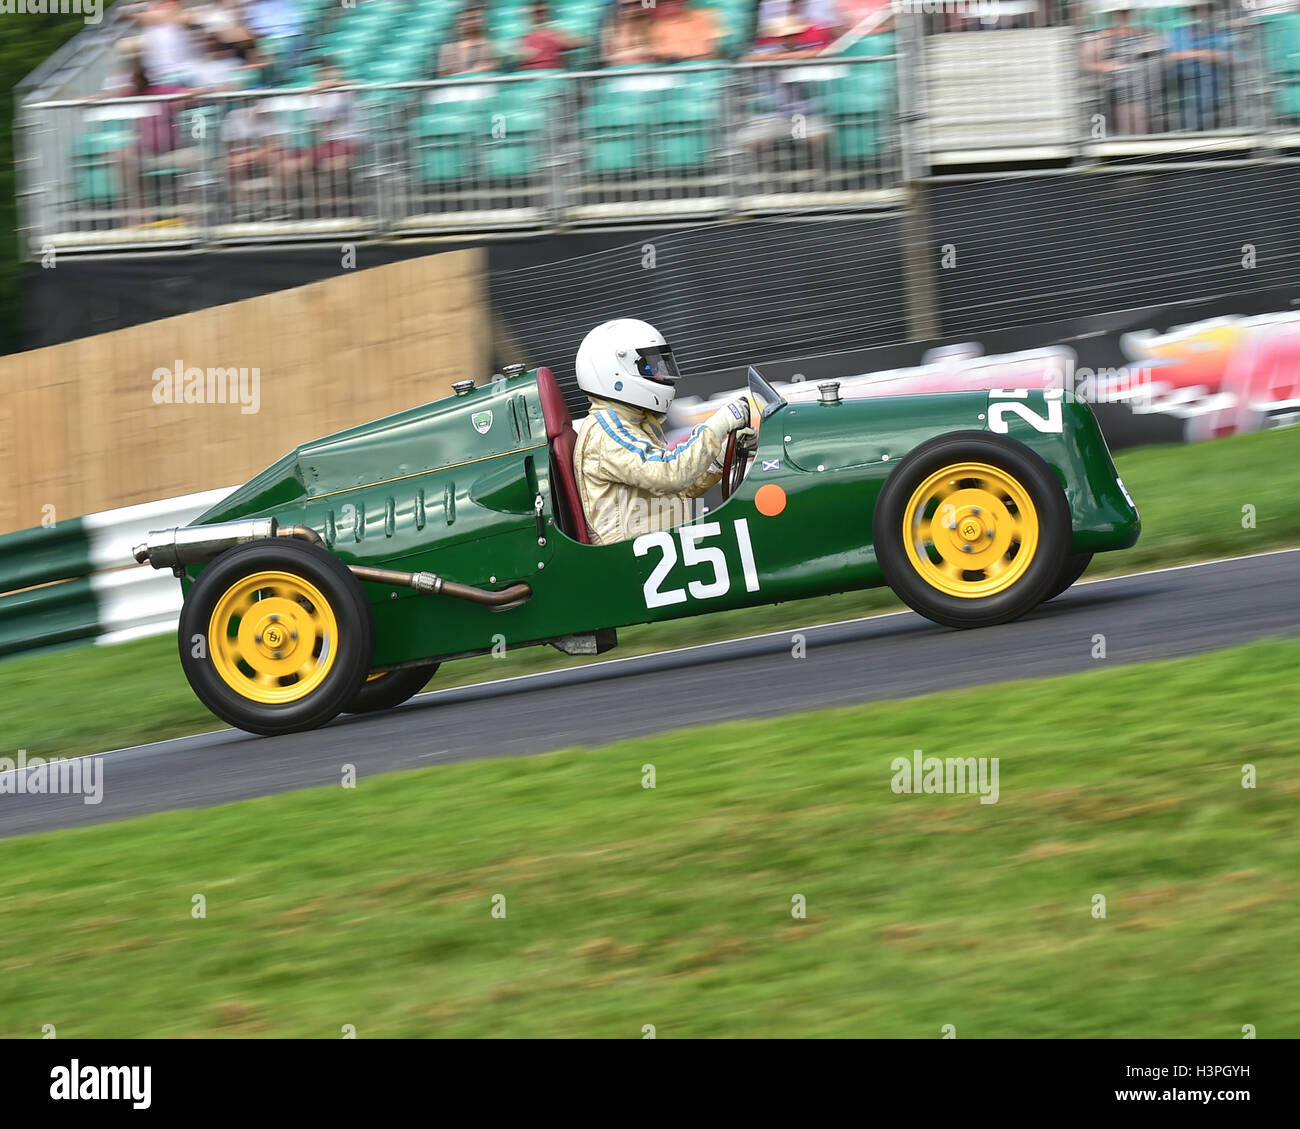 Alan Croft, JP Mk1, F3 500cc Racing Cars, VSCC, Shuttleworth Trophy, Nuffield Trophy, Cadwell Park 24th July 2016. - Stock Image